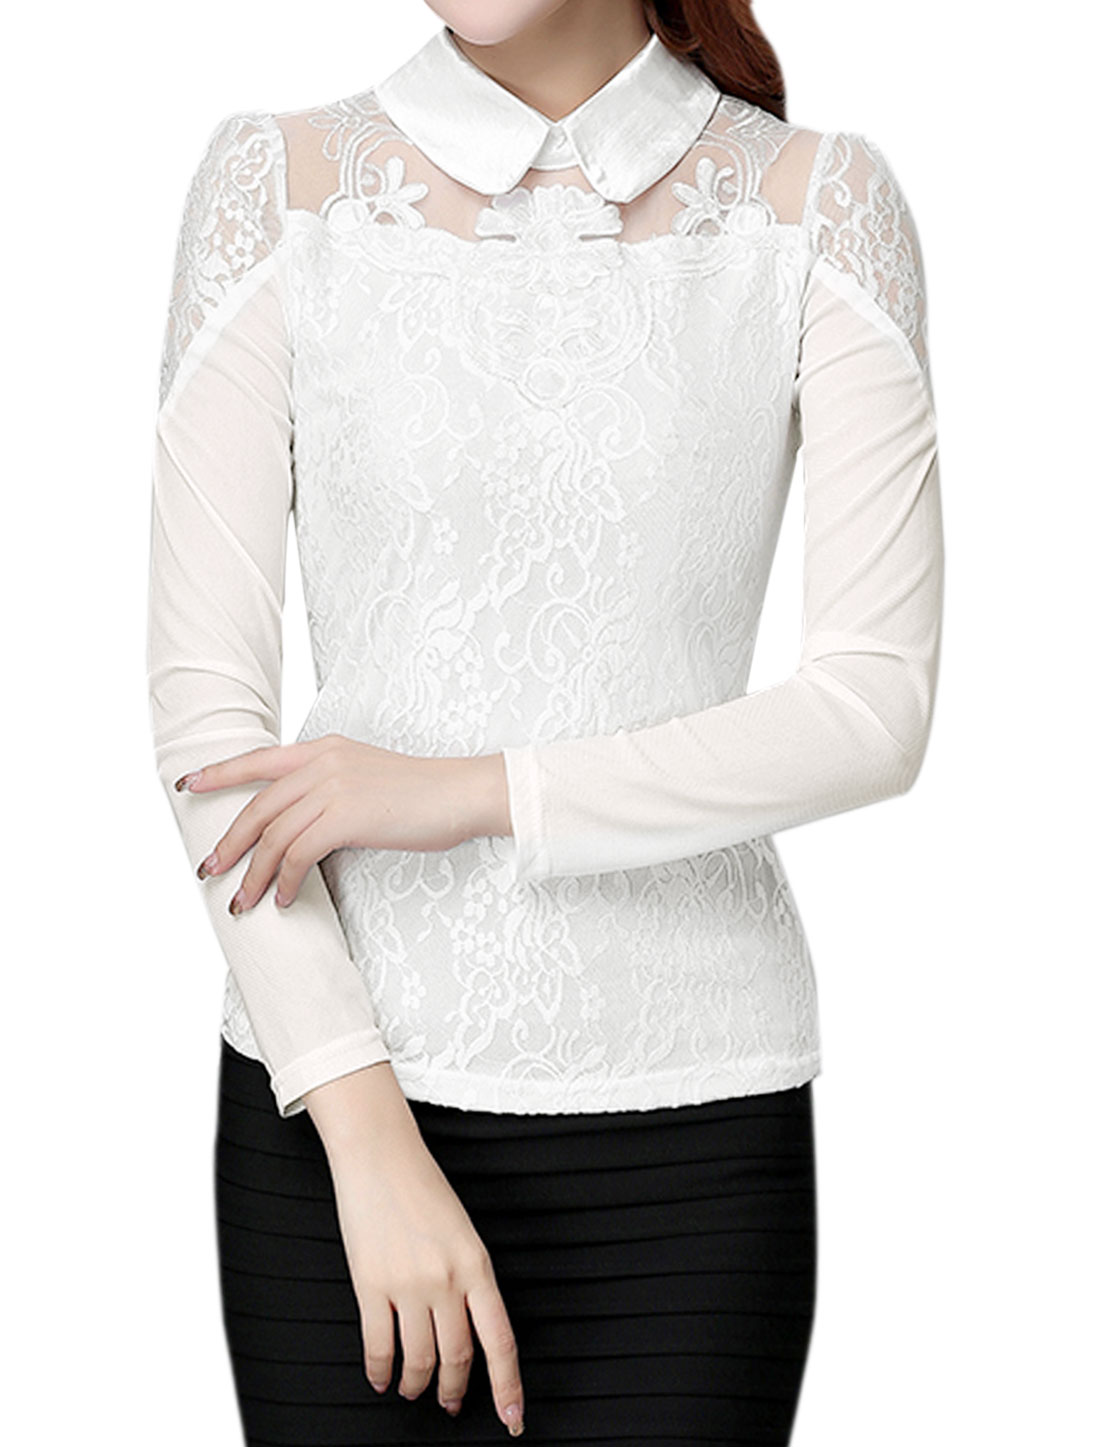 Women Collared Slim Fit Floral Lace Mesh Top White S